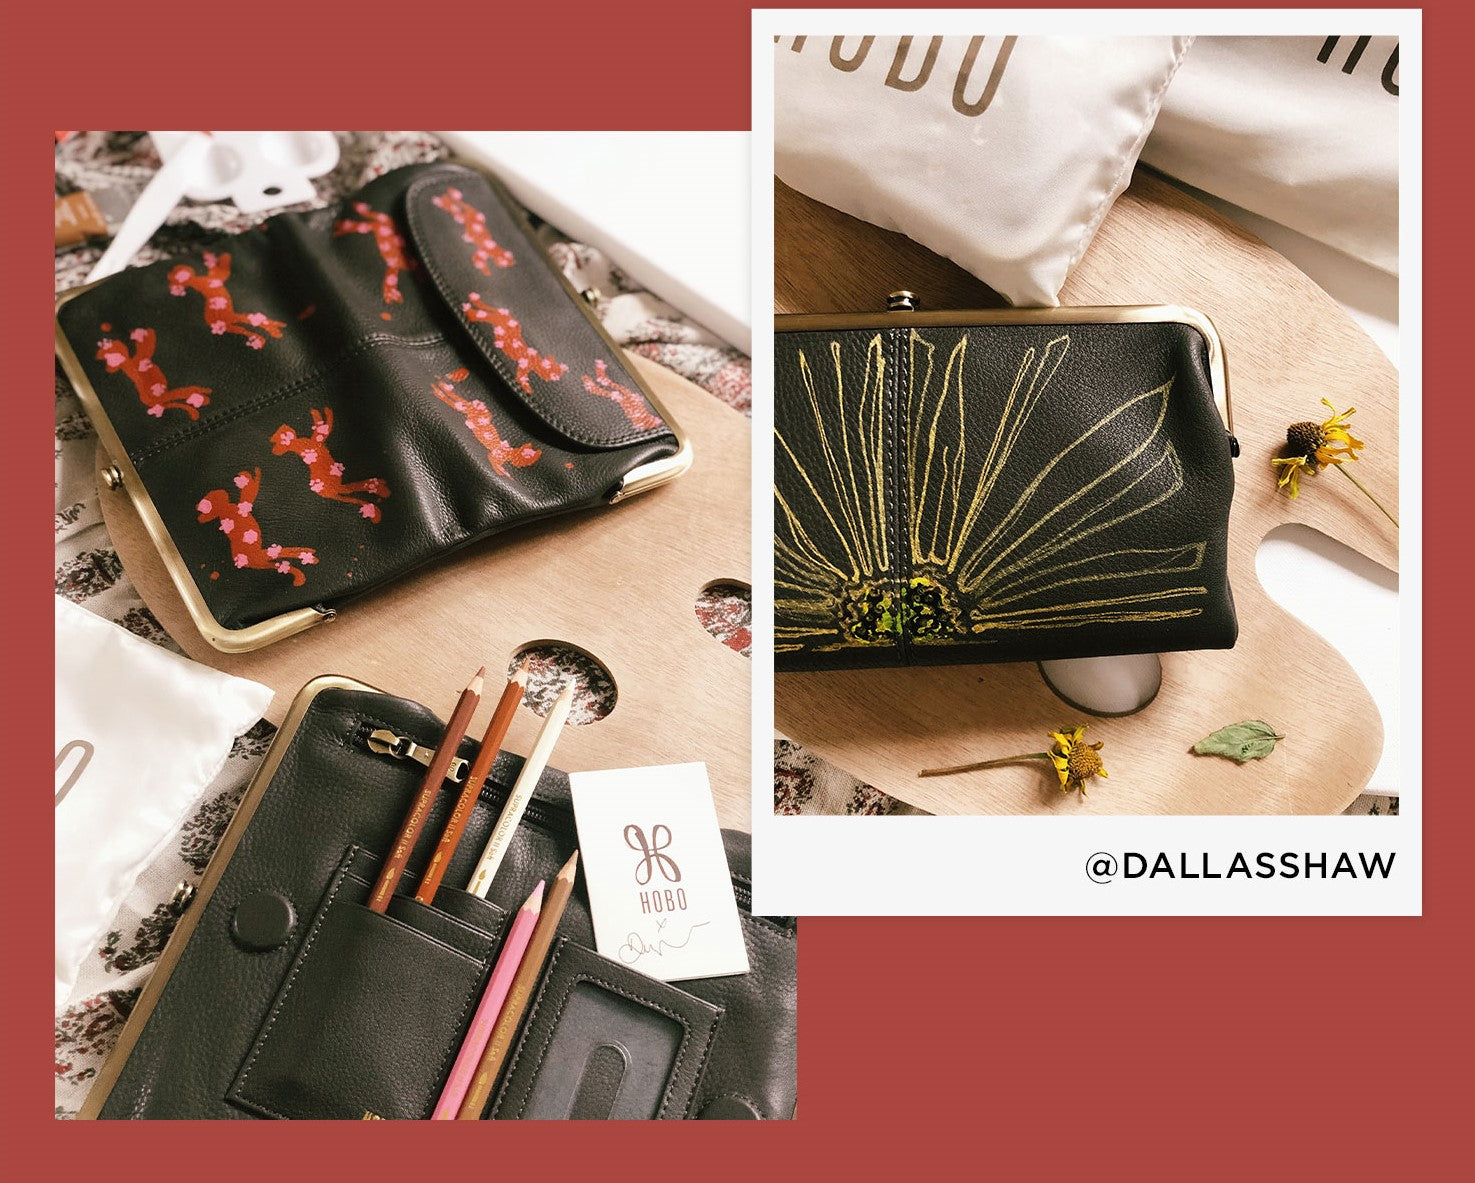 Shop limited edition Lauren wallets, hand painted by Dallas Shaw